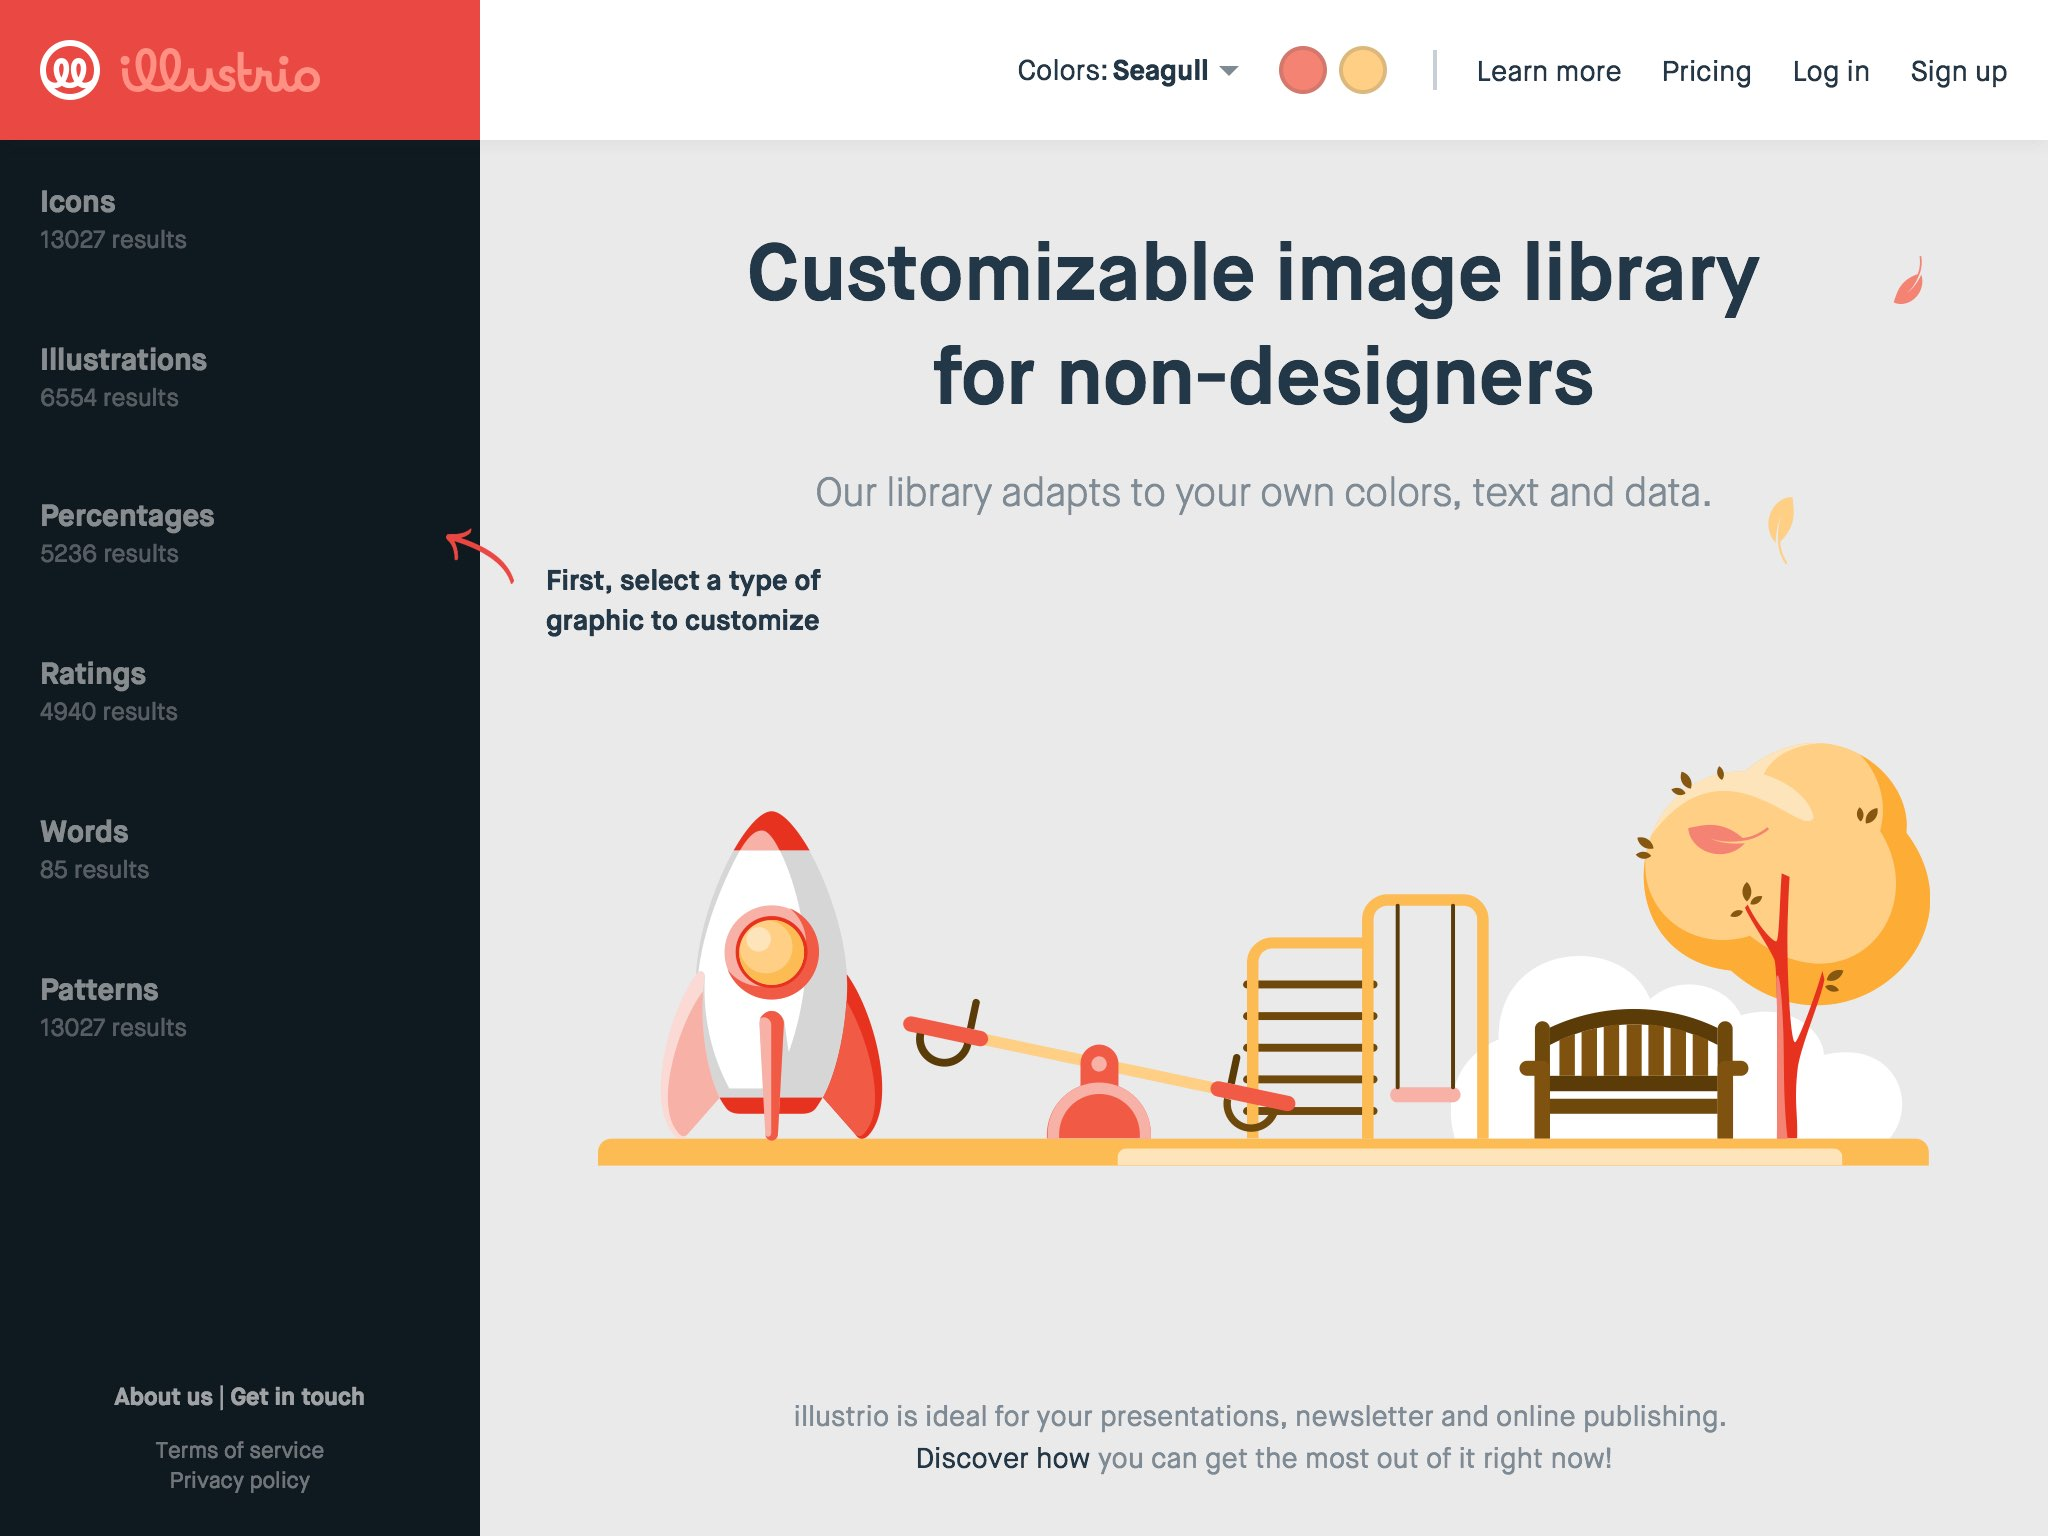 illustrio offers an extensive library of images you can customize with your own colors, text and figures.